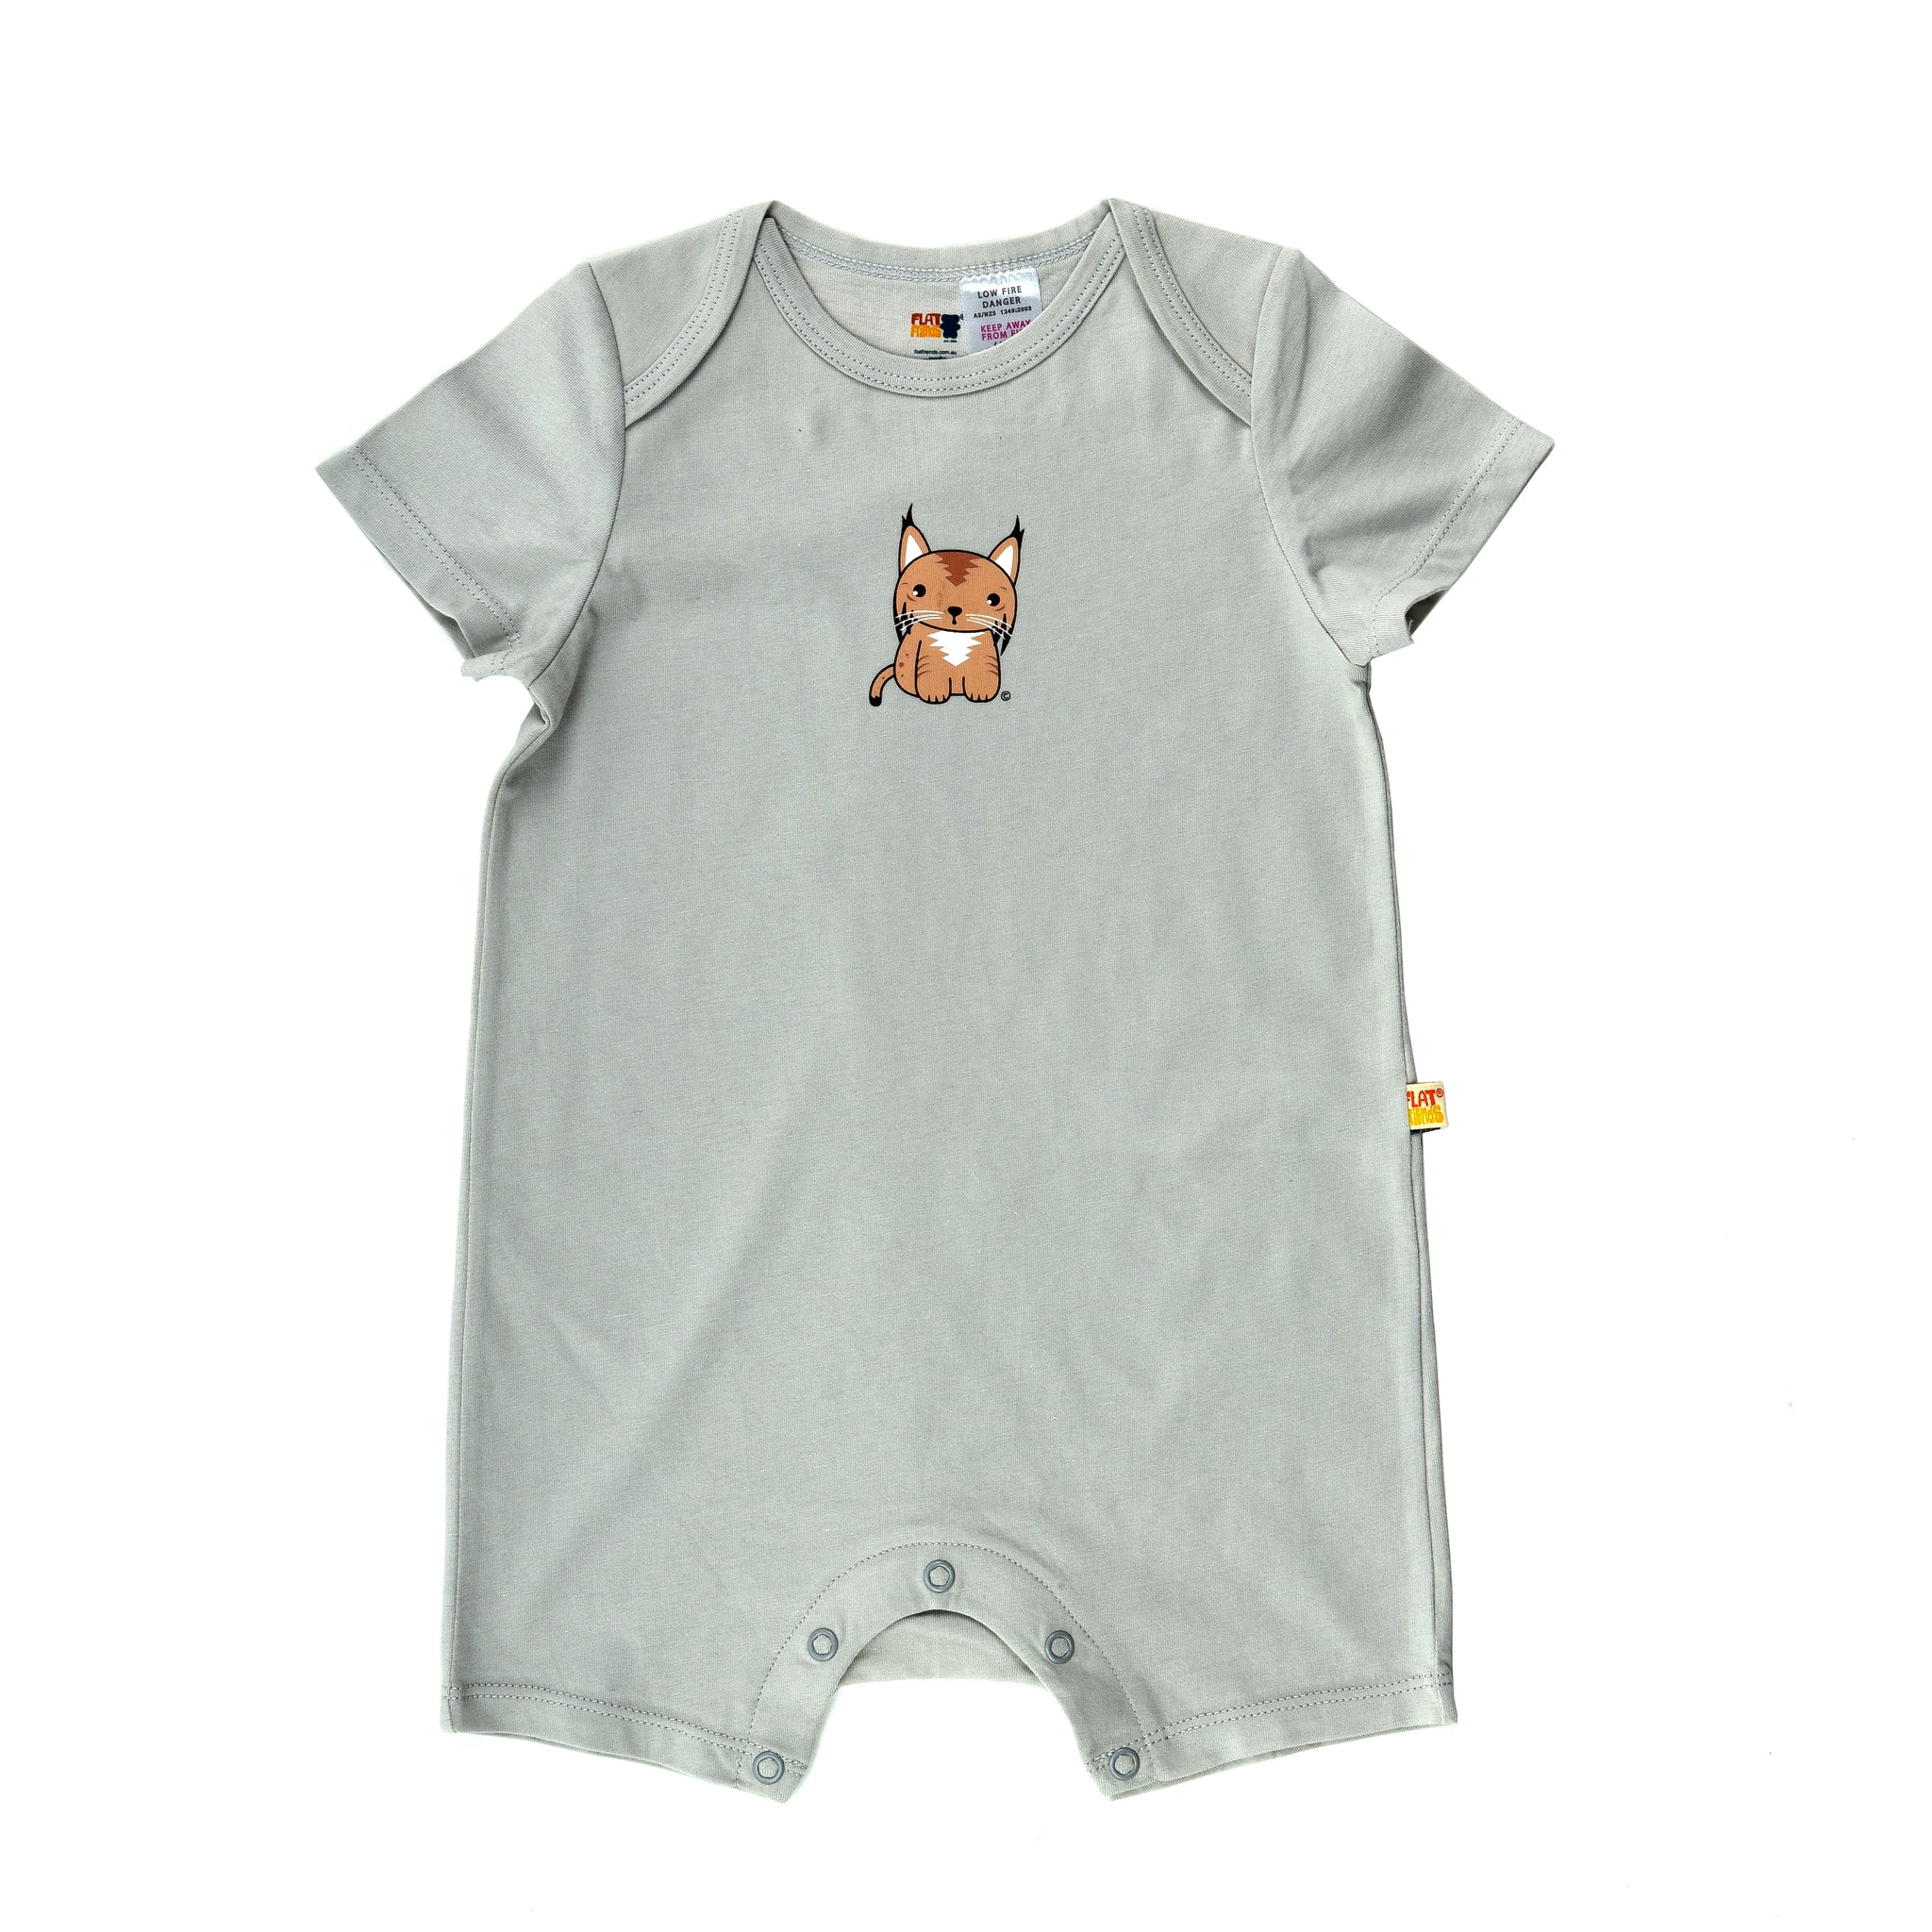 Short Sleeve Baby Jump Suit - Organic Cotton -Lynx